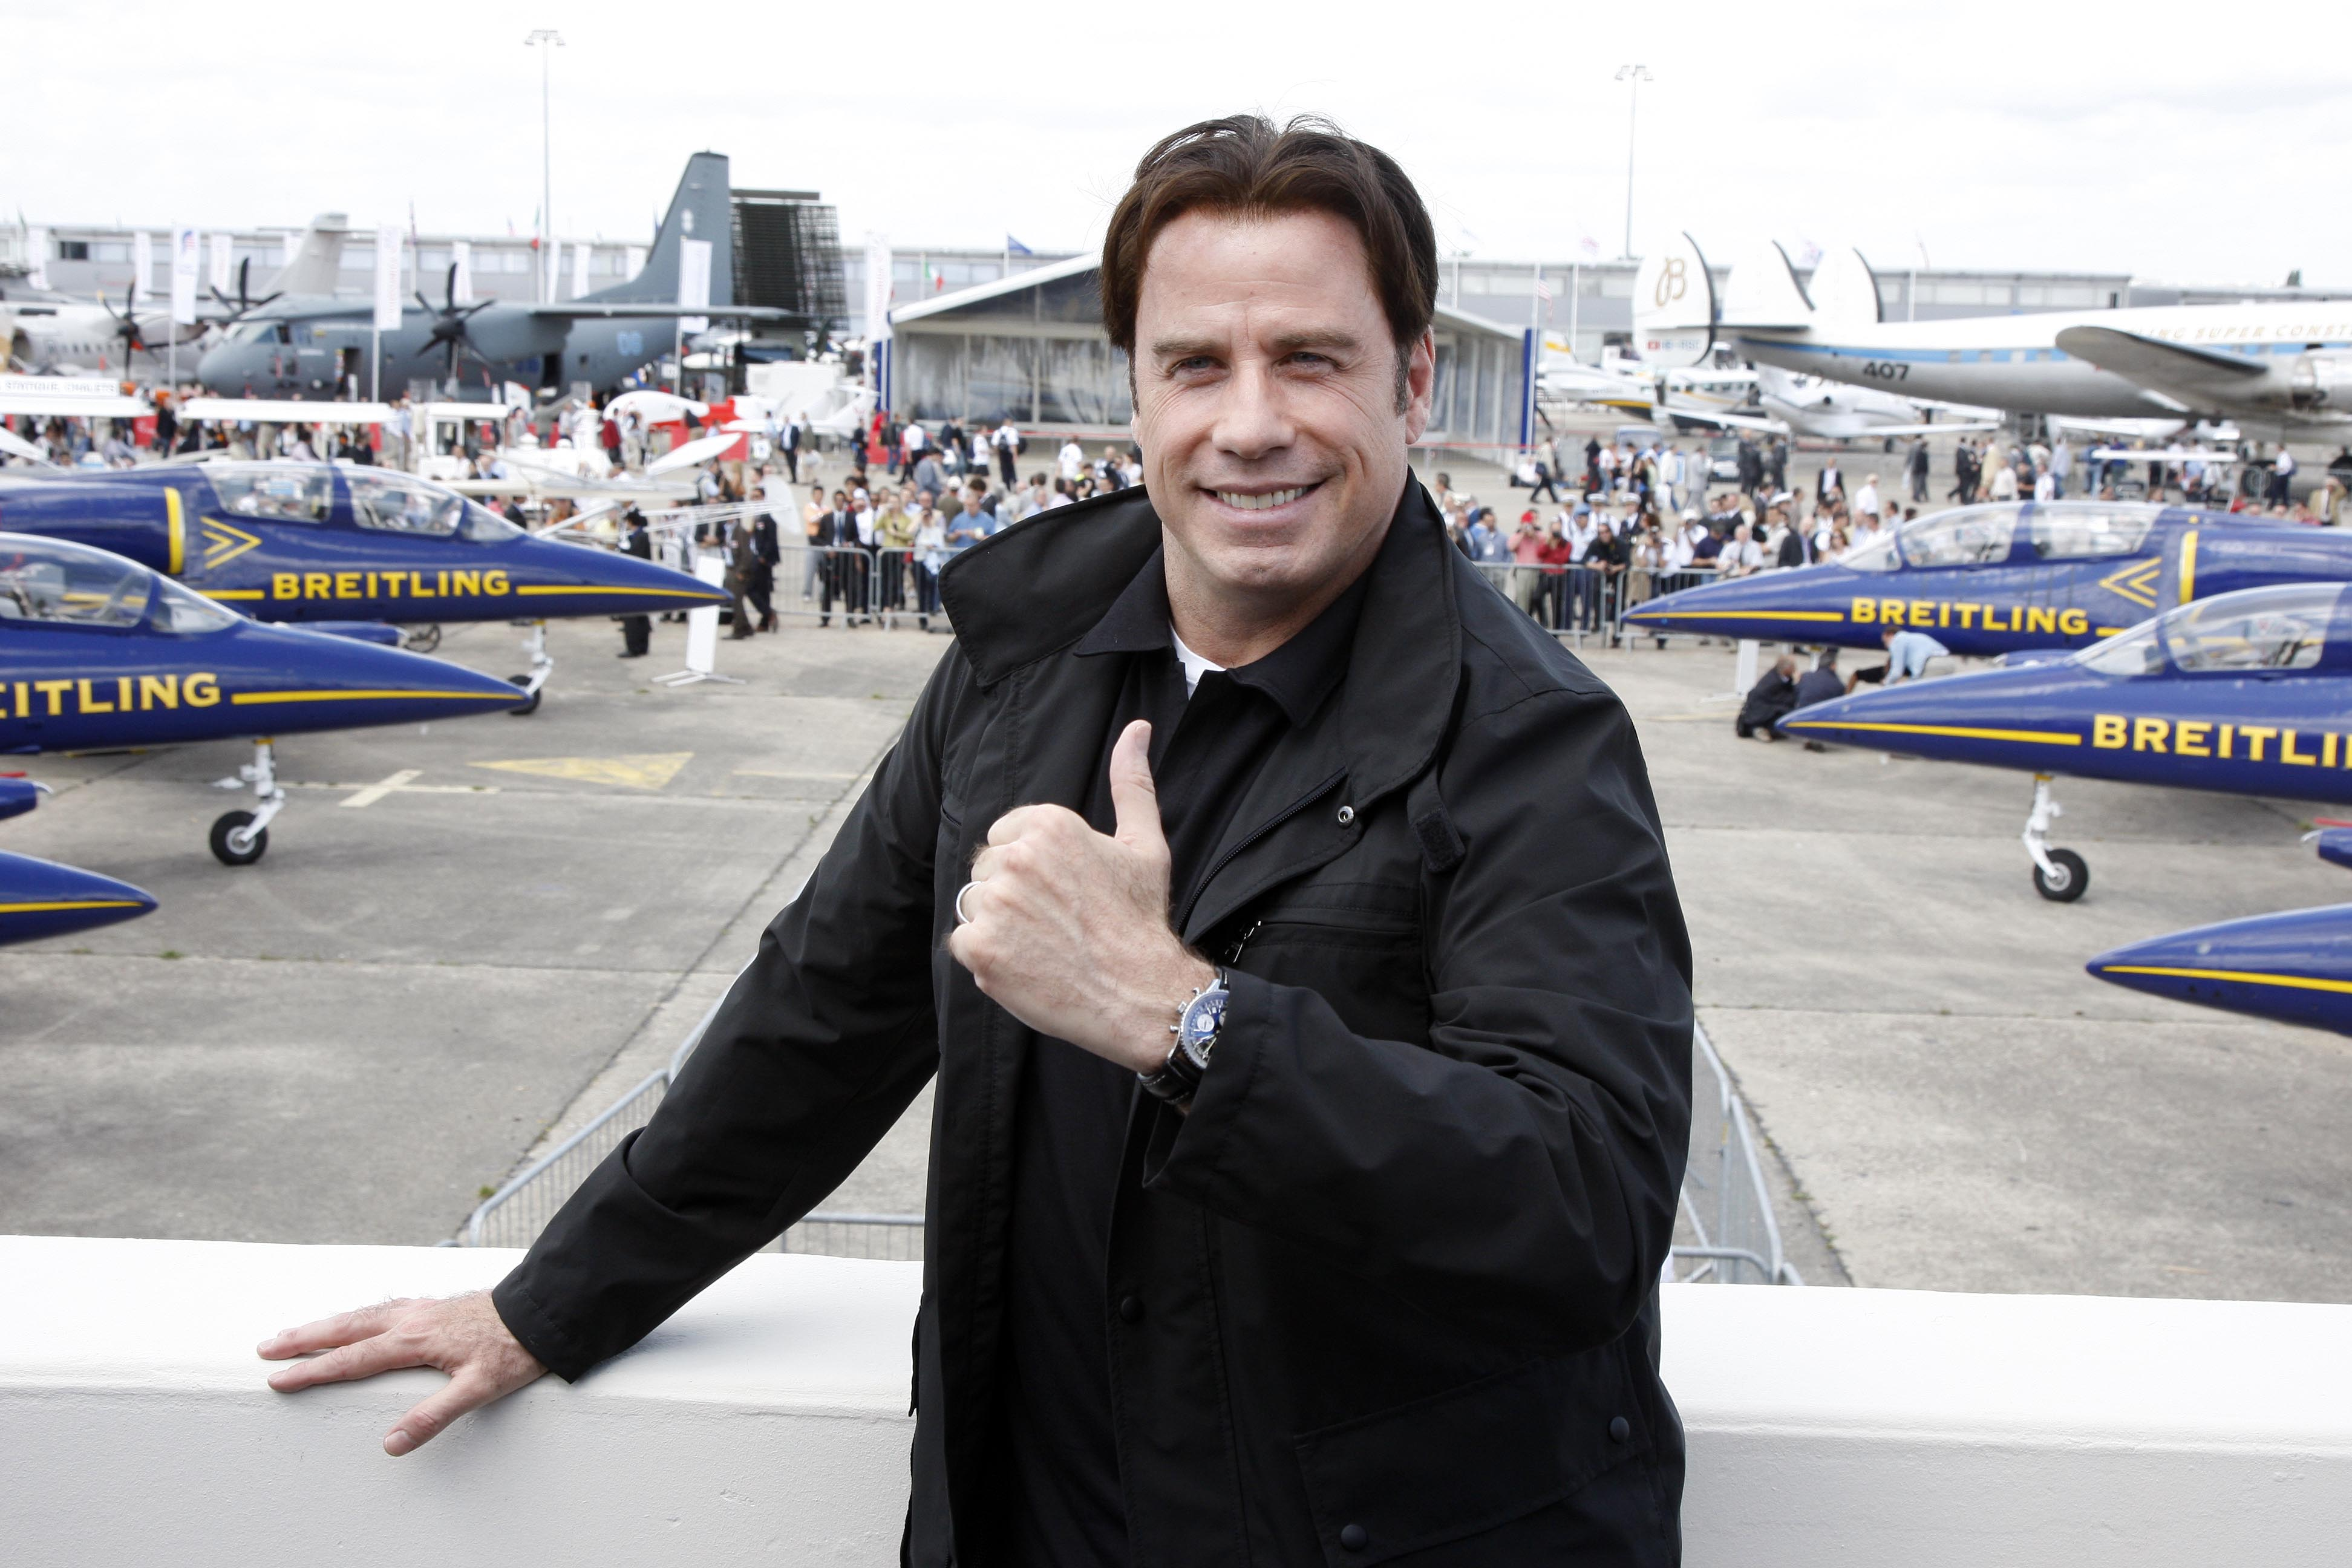 LE BOURGET, FRANCE- JUNE 21:  Hollywood actor and pilot John Travolta attends the 47th International Paris Air Show on June 21, 2007 in Le Bourget France. Travolta, invited by Breitling, witnessed the presentation of Airbus A380 superjumbo and Boeing's F/A-18 fighter jet.  (Photo by Michel Dufour/WireImage)